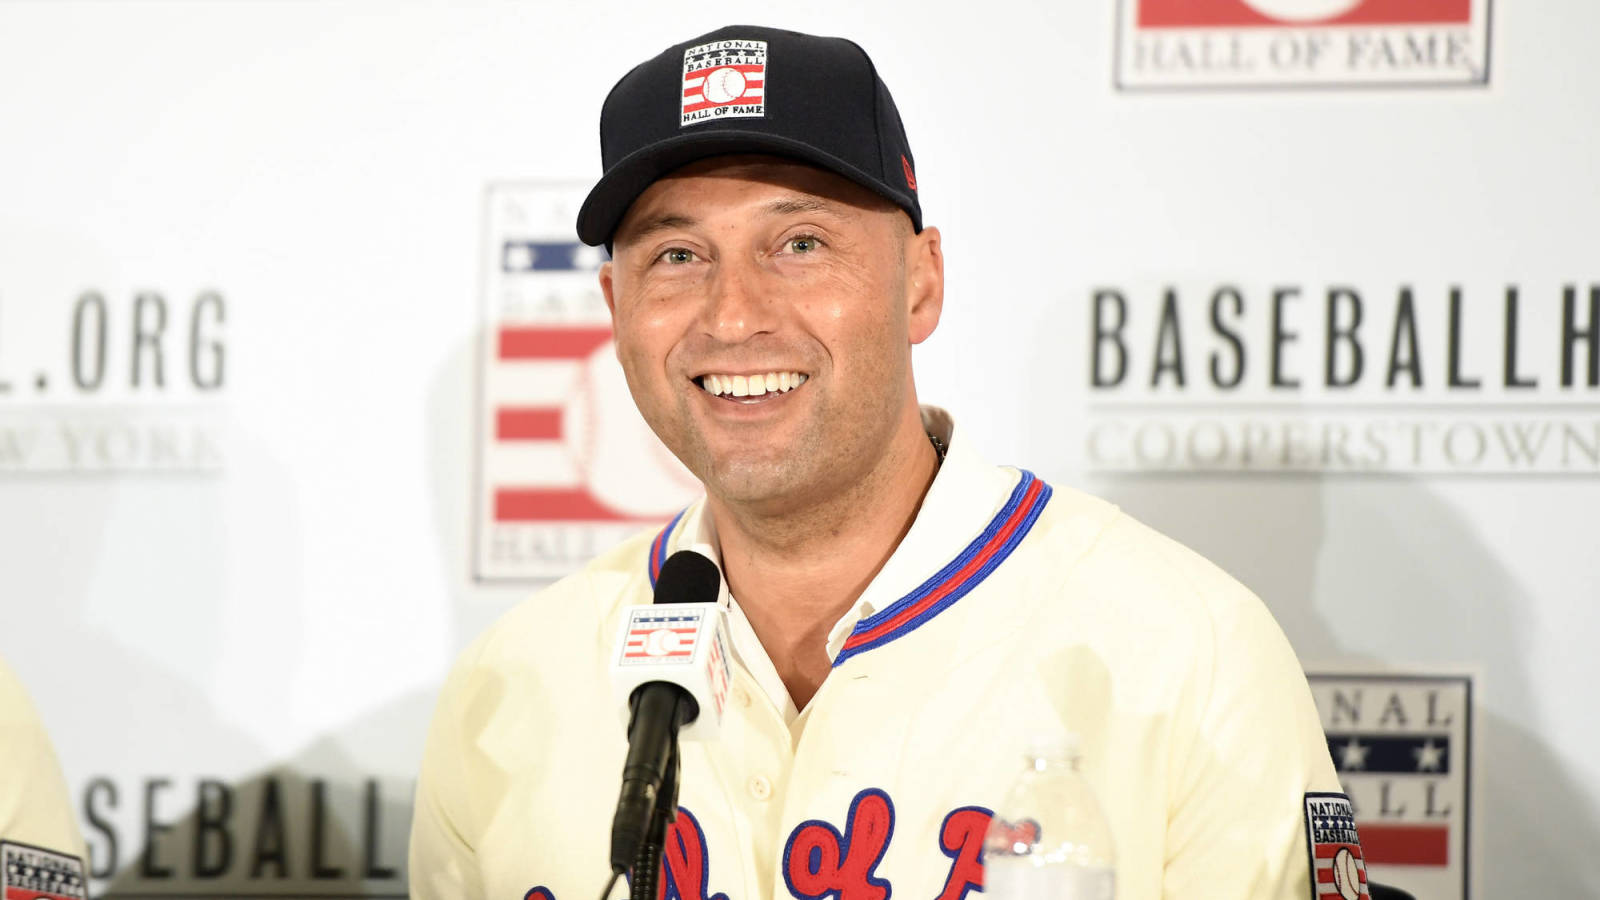 Extra! Extra! Yankees great Derek Jeter 'hated' extra innings when he played